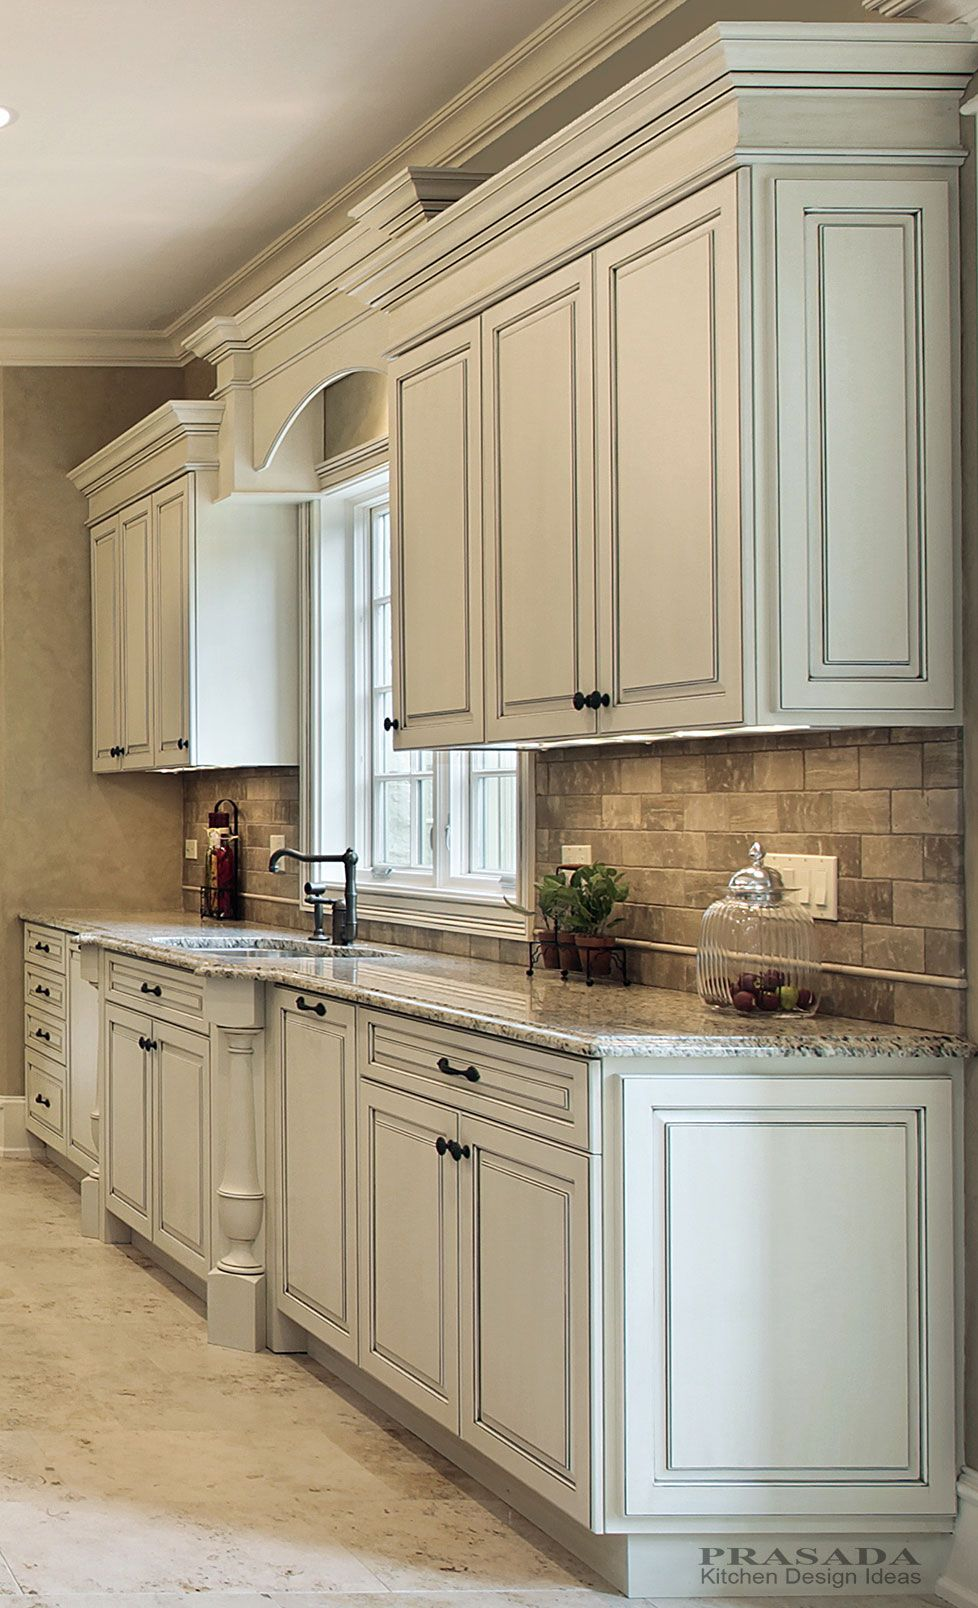 kitchen design ideas white cabinets. Discover These KITCHEN DESIGN IDEAS  Tips And Trends For 2015 Our Inspiration Gallery Has Lots Of High Impact Kitchen Ideas Find Out About Design Granite Countertop Valance Countertop